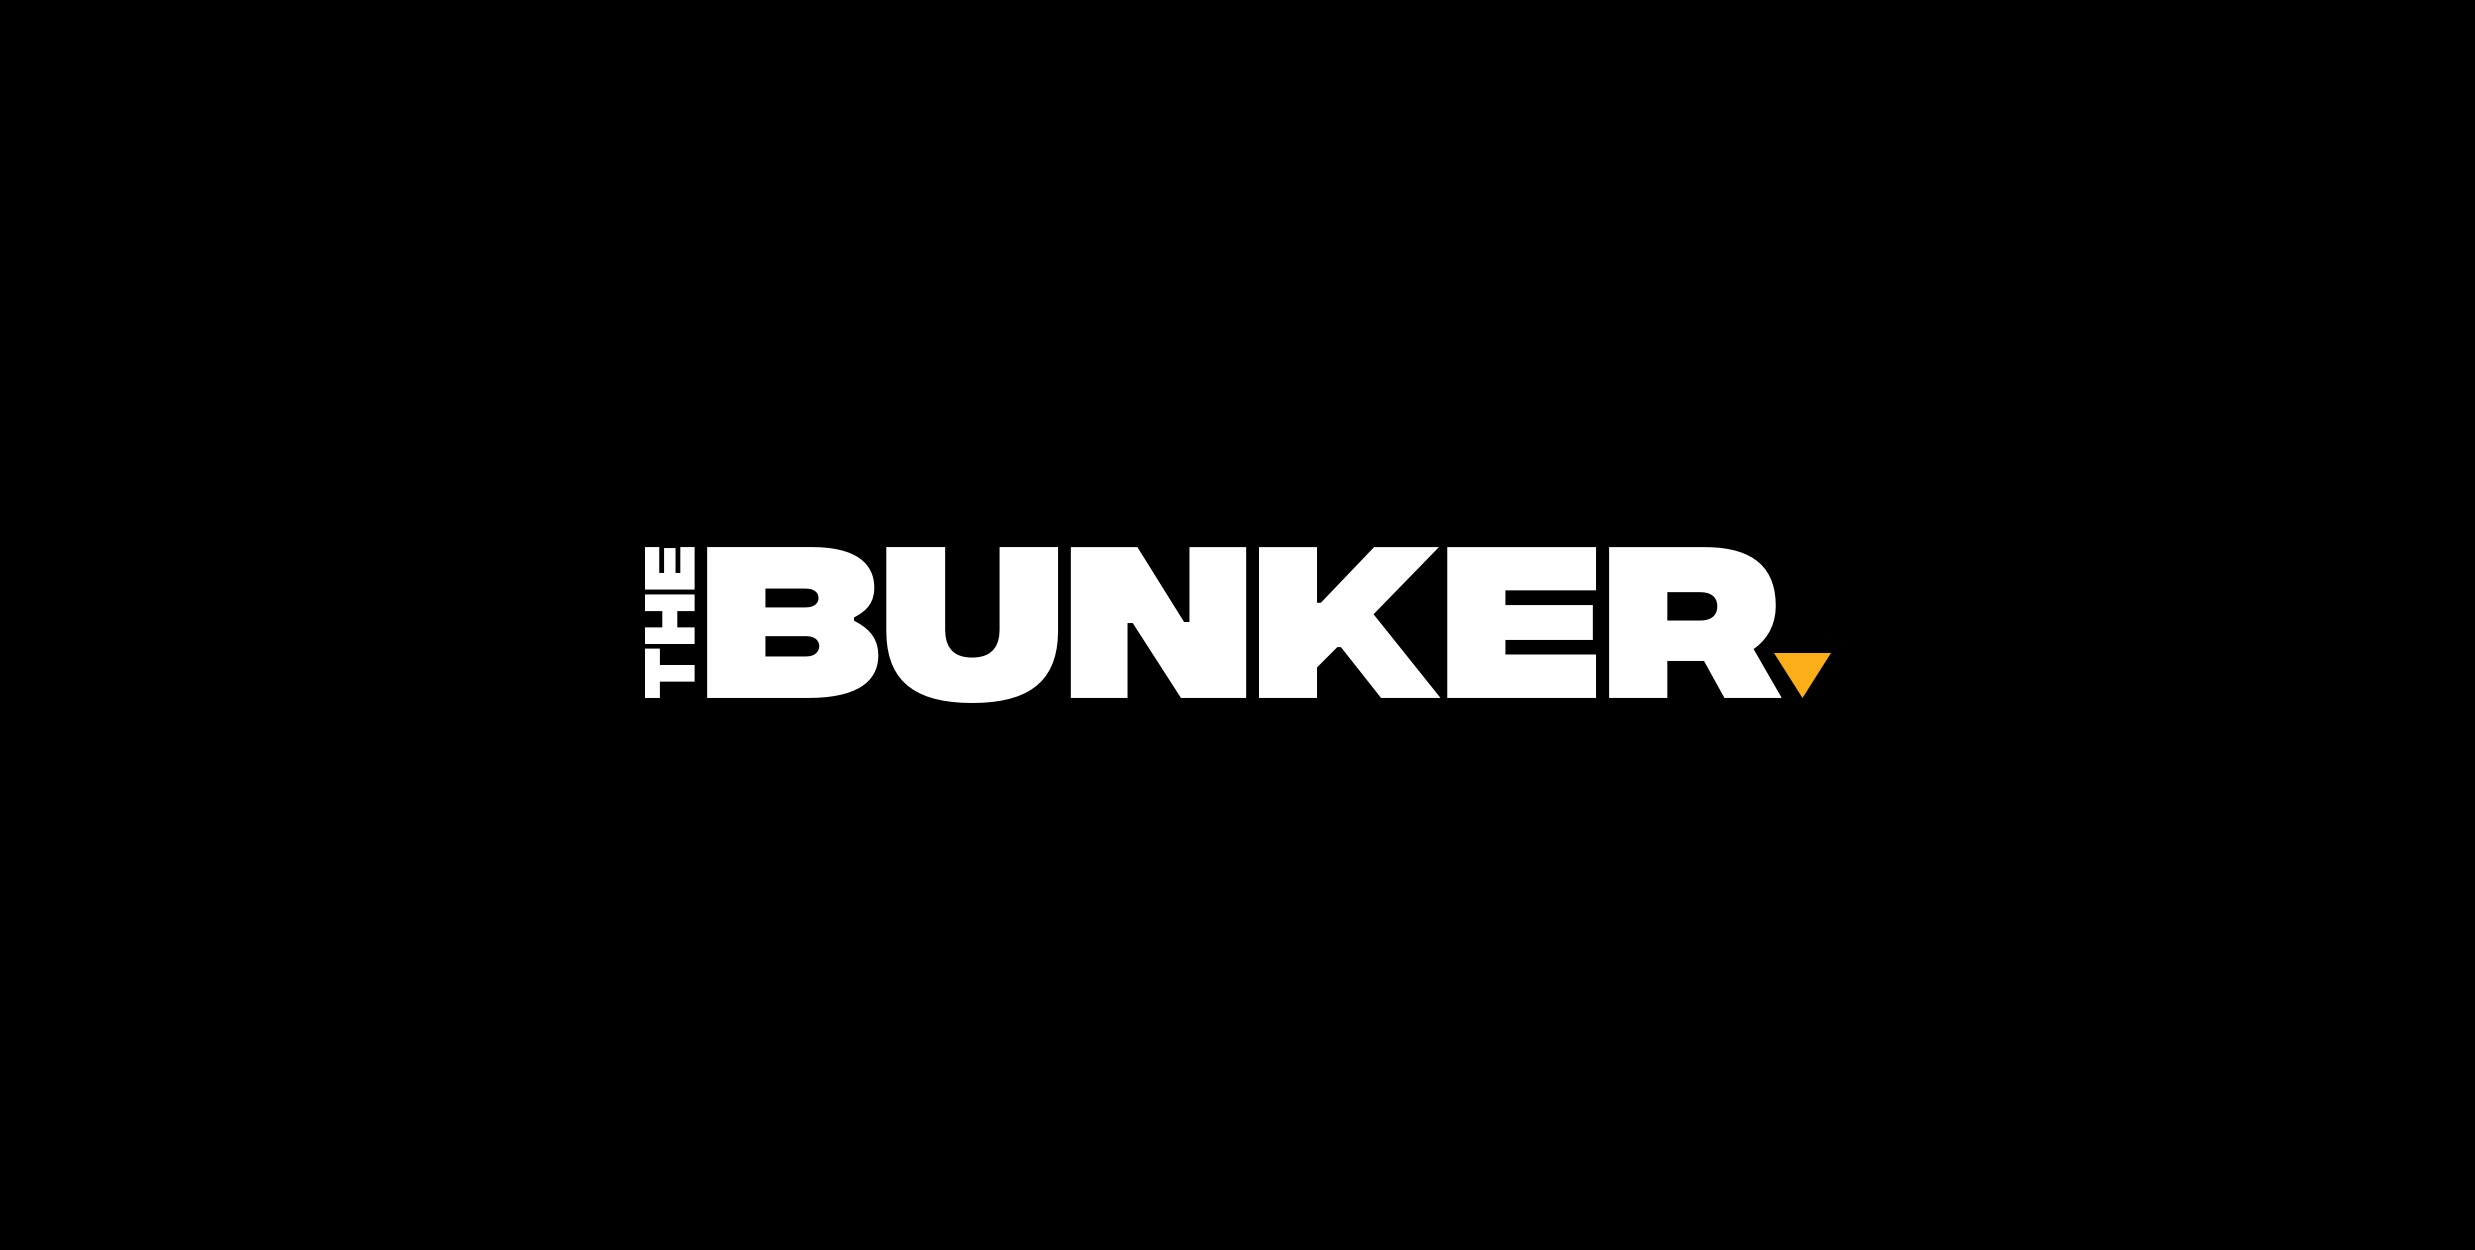 1_The Bunker Logo_2475x1250